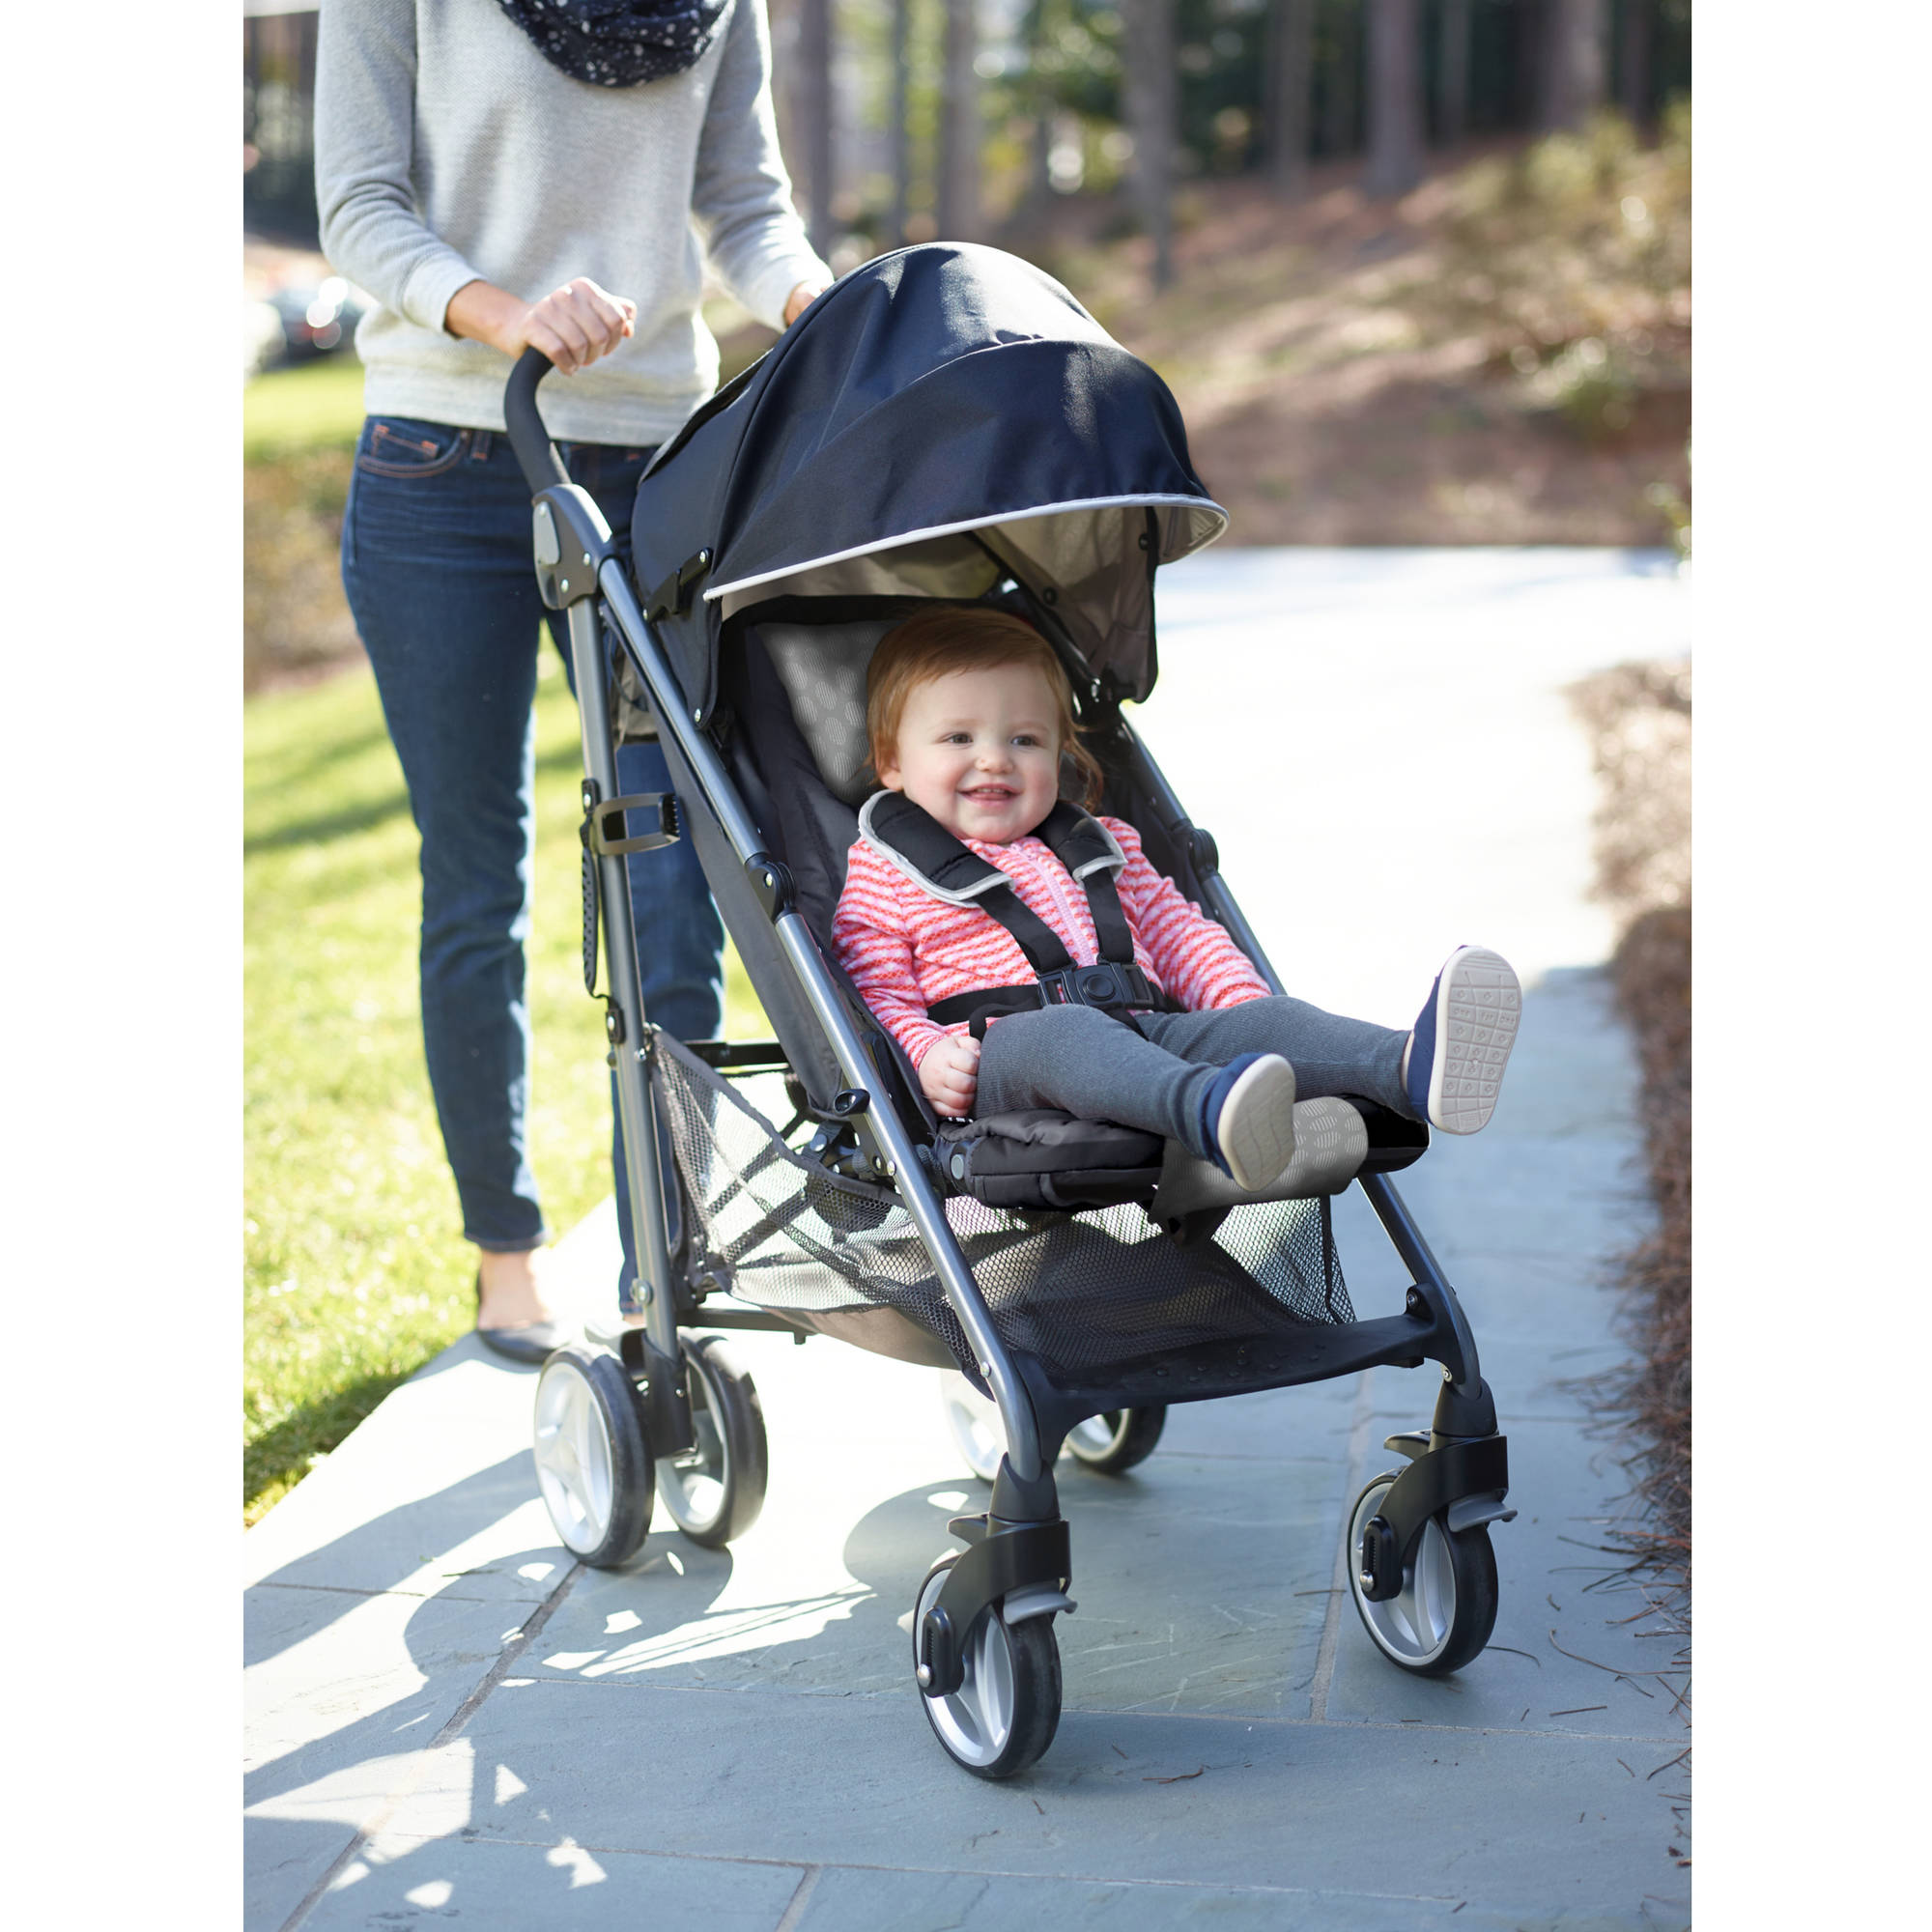 Graco Breaze Travel System Stroller with SnugRide Connect 35 Infant Car Seat Davis Walmart